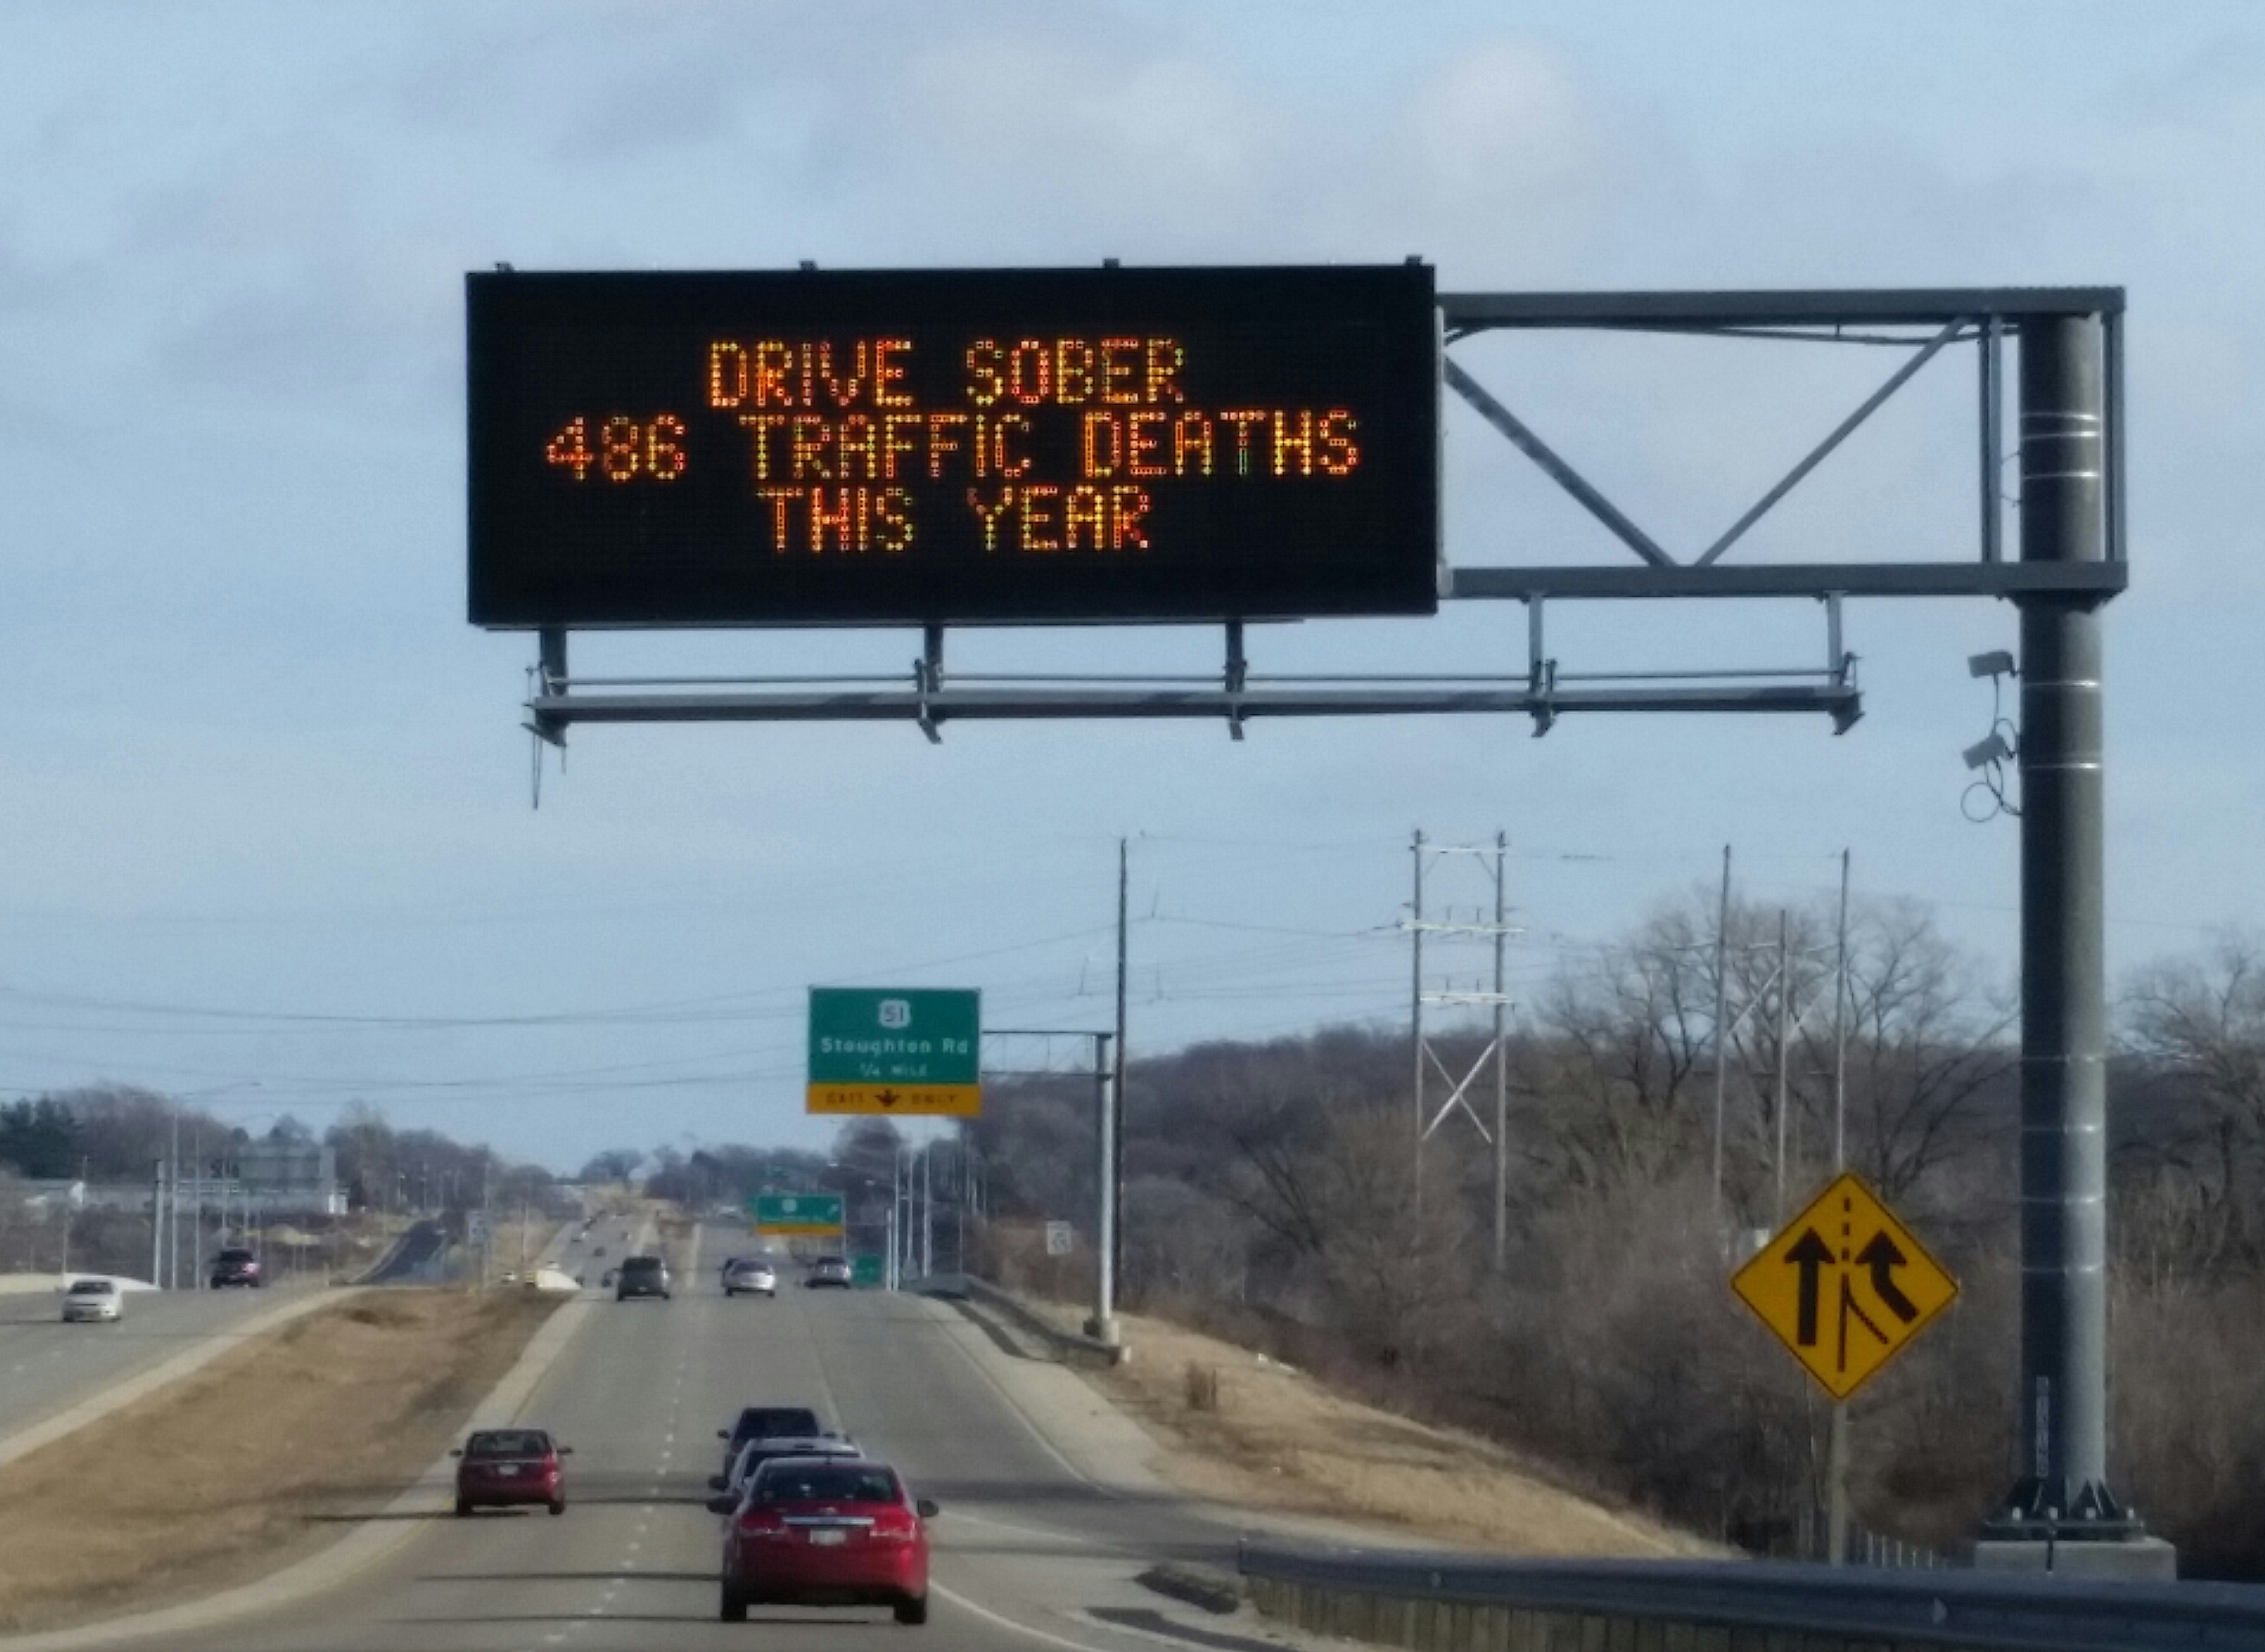 Dynamic Message Signs Remind Motorists Of Road Fatalities